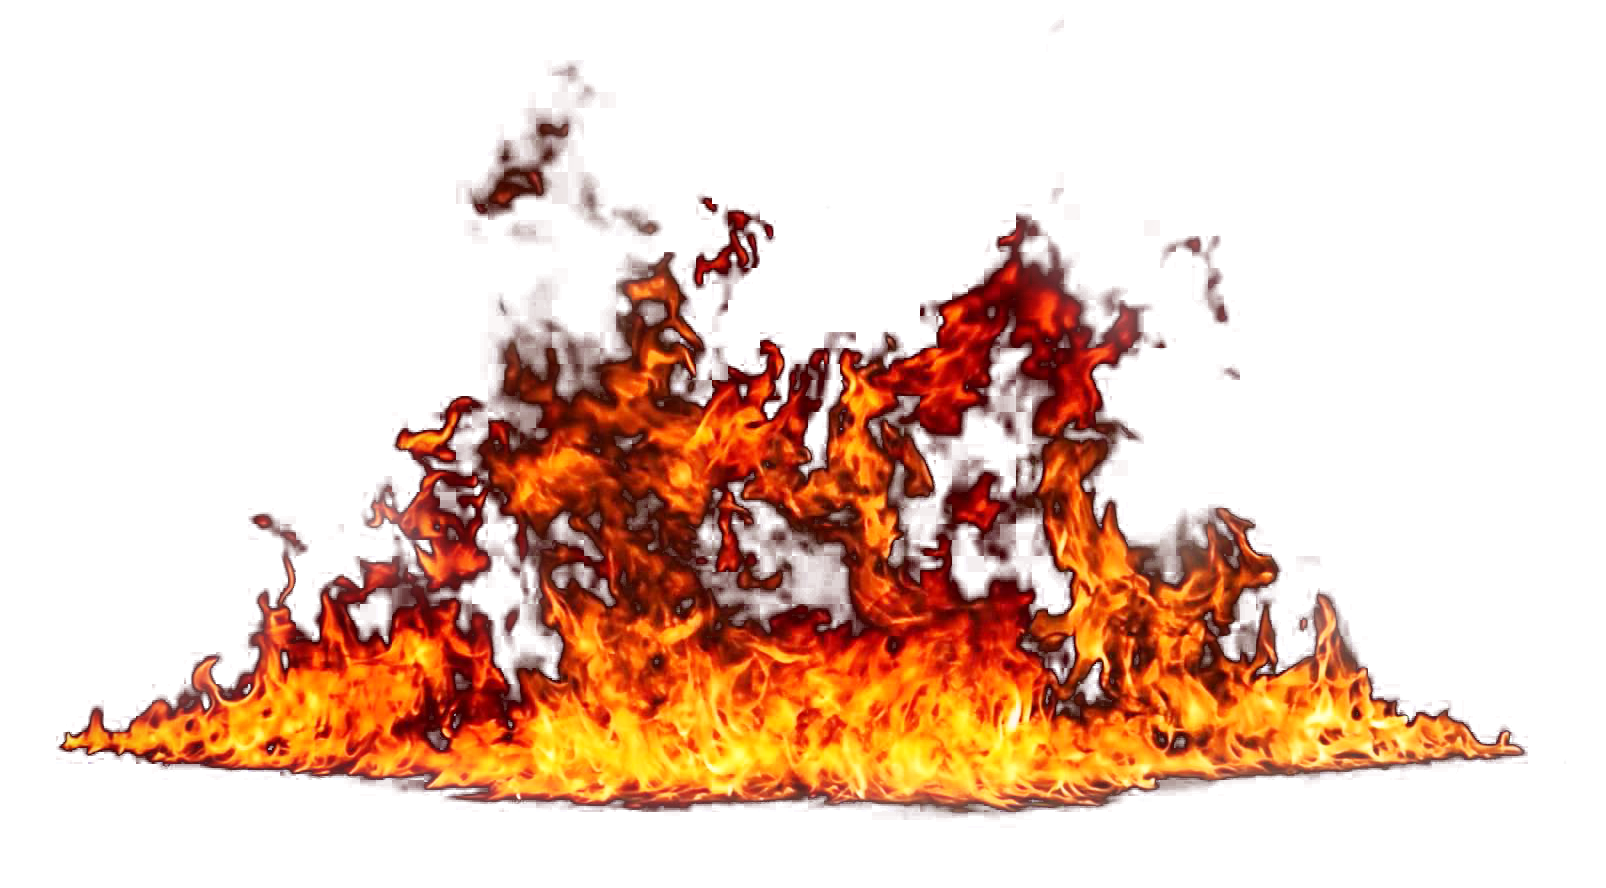 Png photo download. Fire images free icons